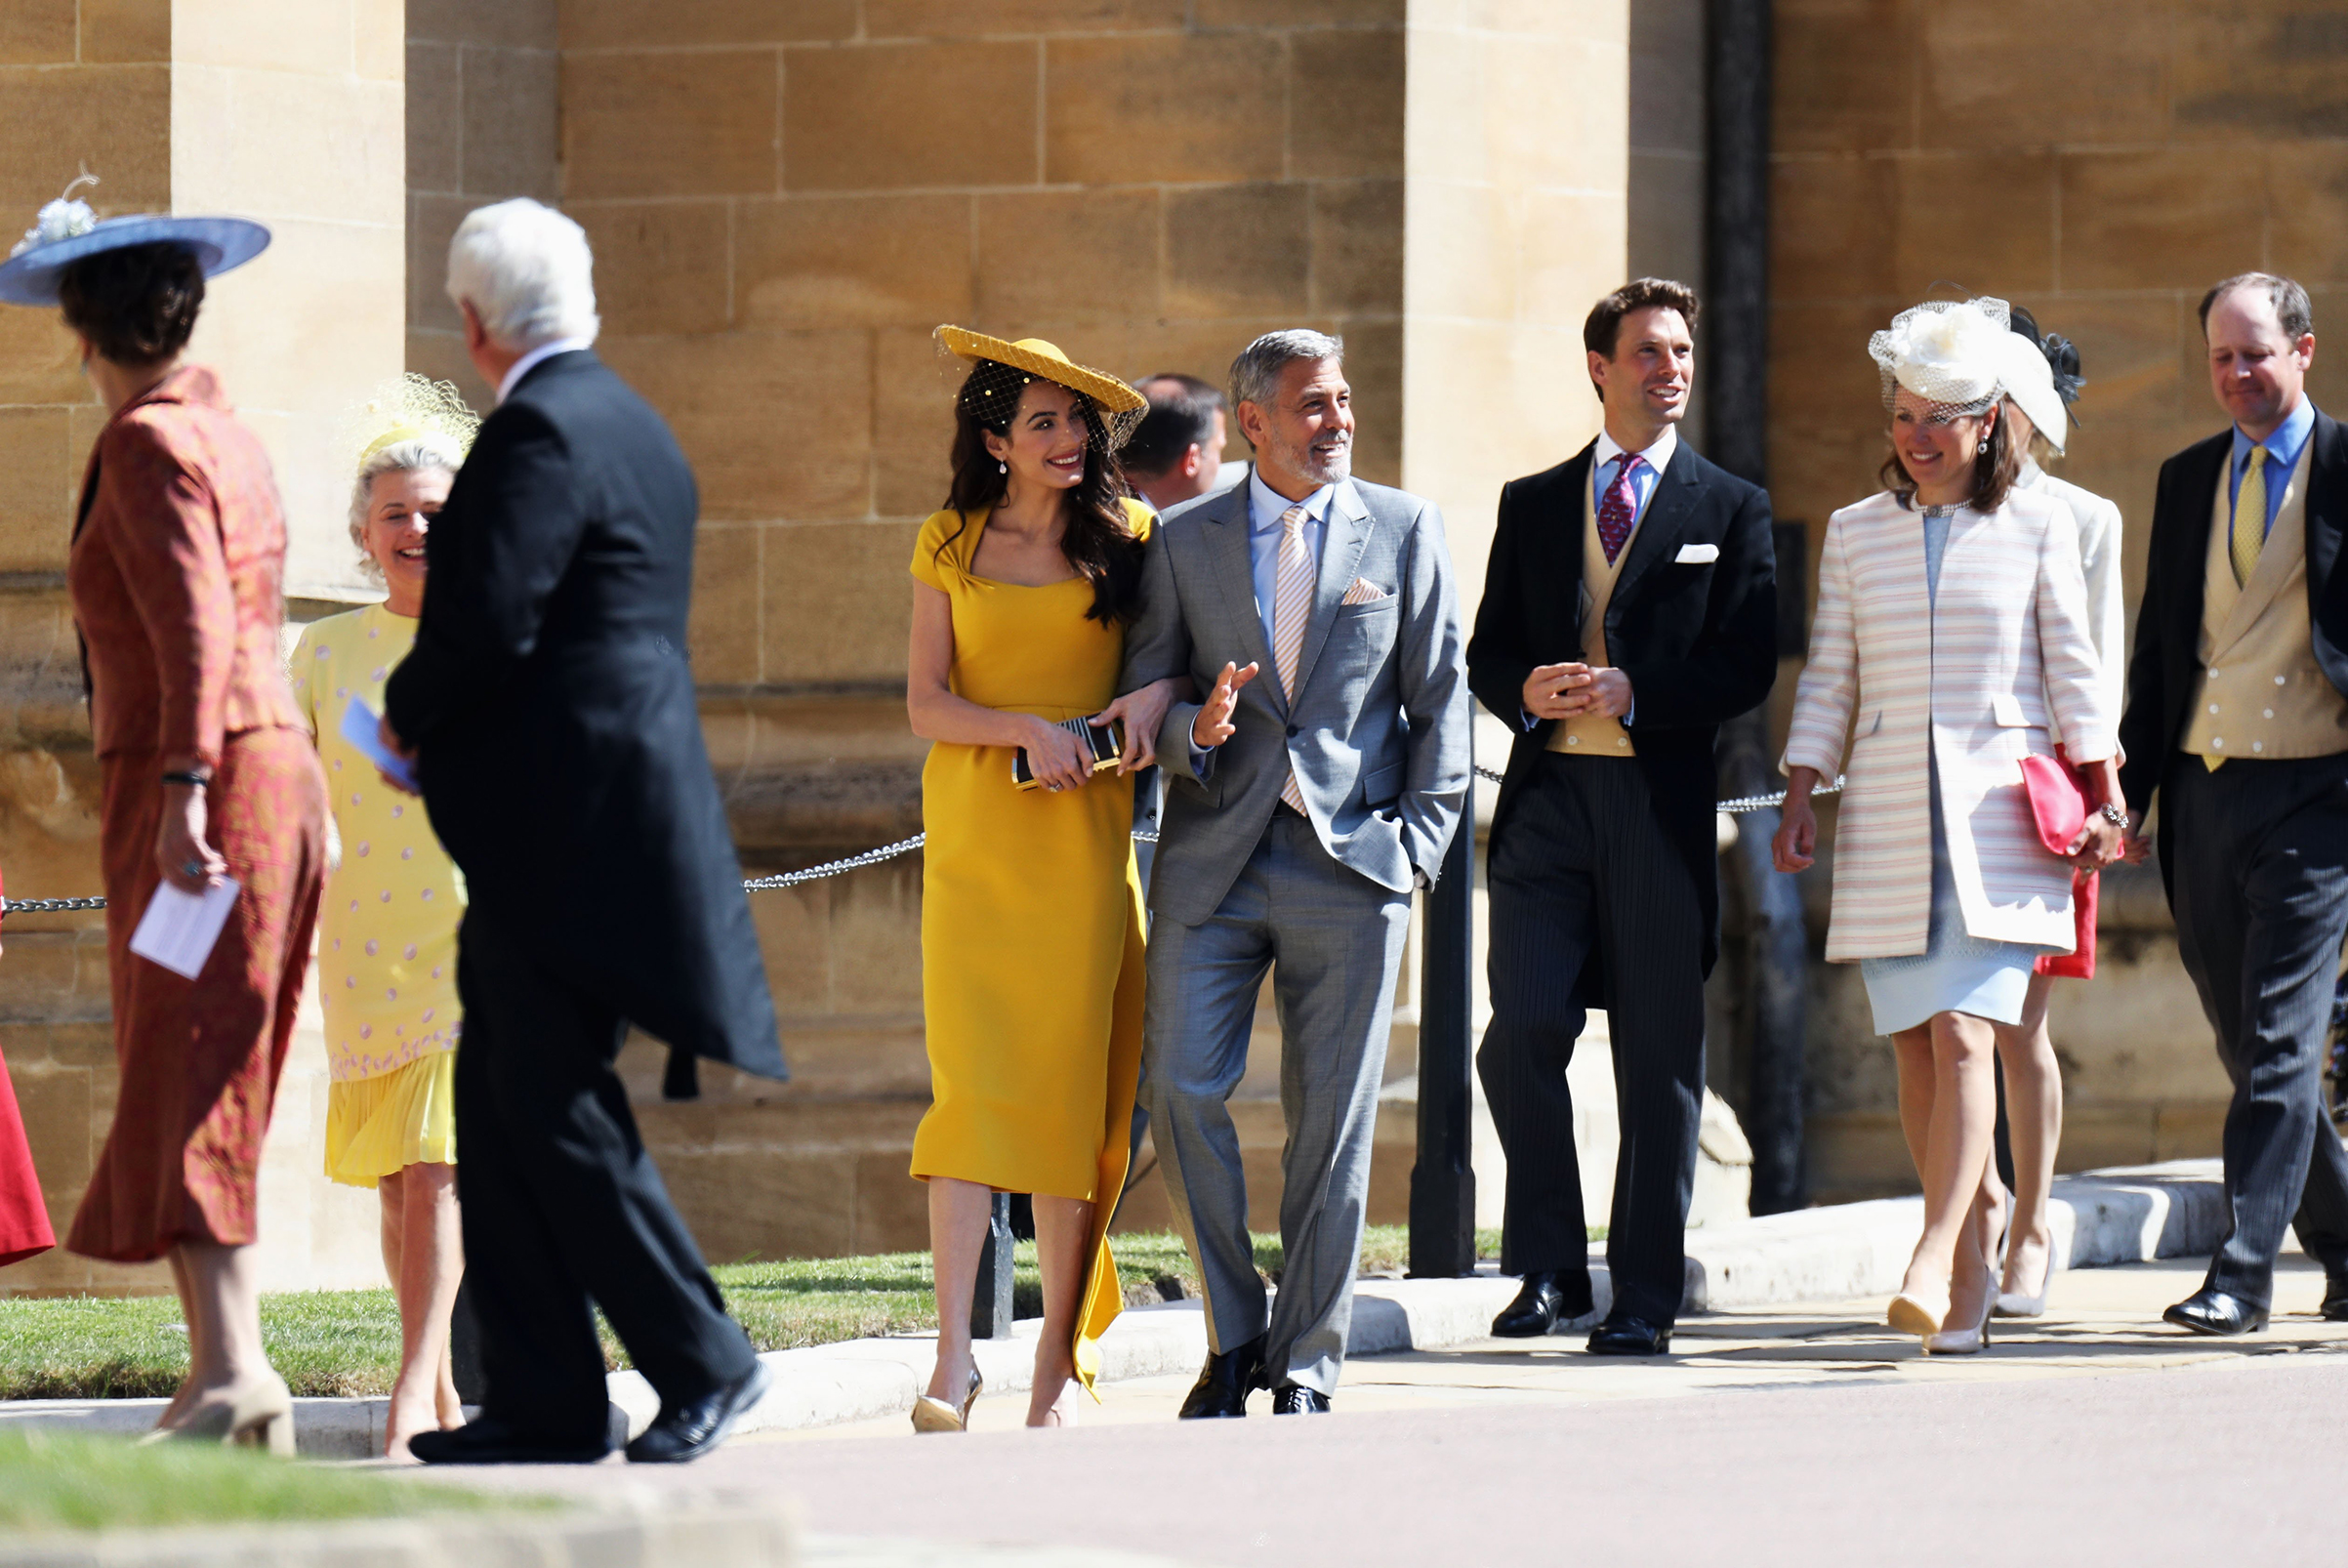 Amal Clooney and George Clooney arrive at the wedding of Prince Harry to Ms Meghan Markle at St George's Chapel, Windsor Castle on May 19, 2018 in Windsor, England.